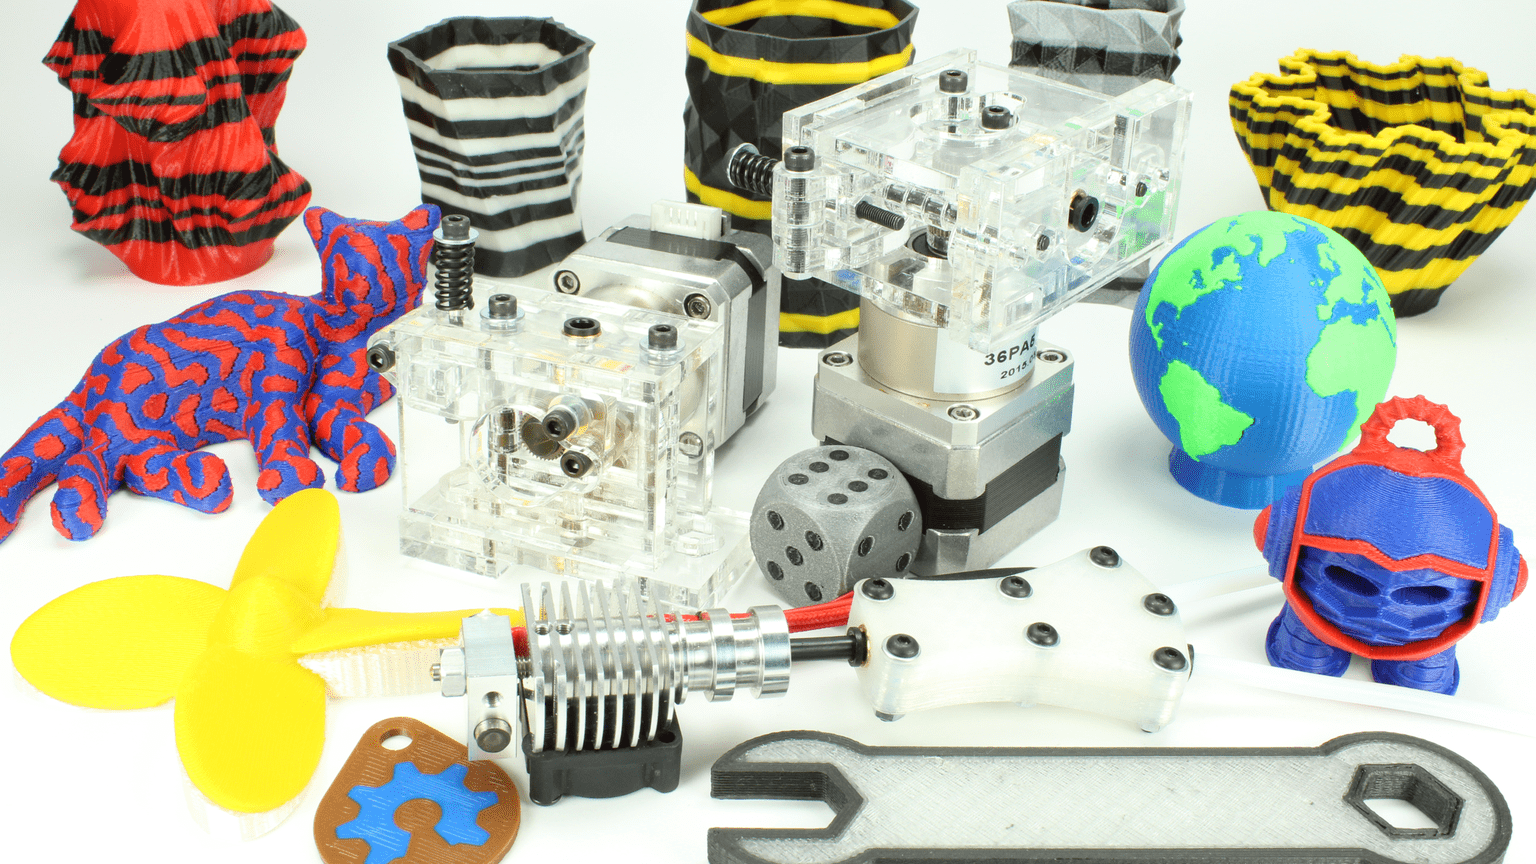 3D Printing Accessories for your 3D Printer